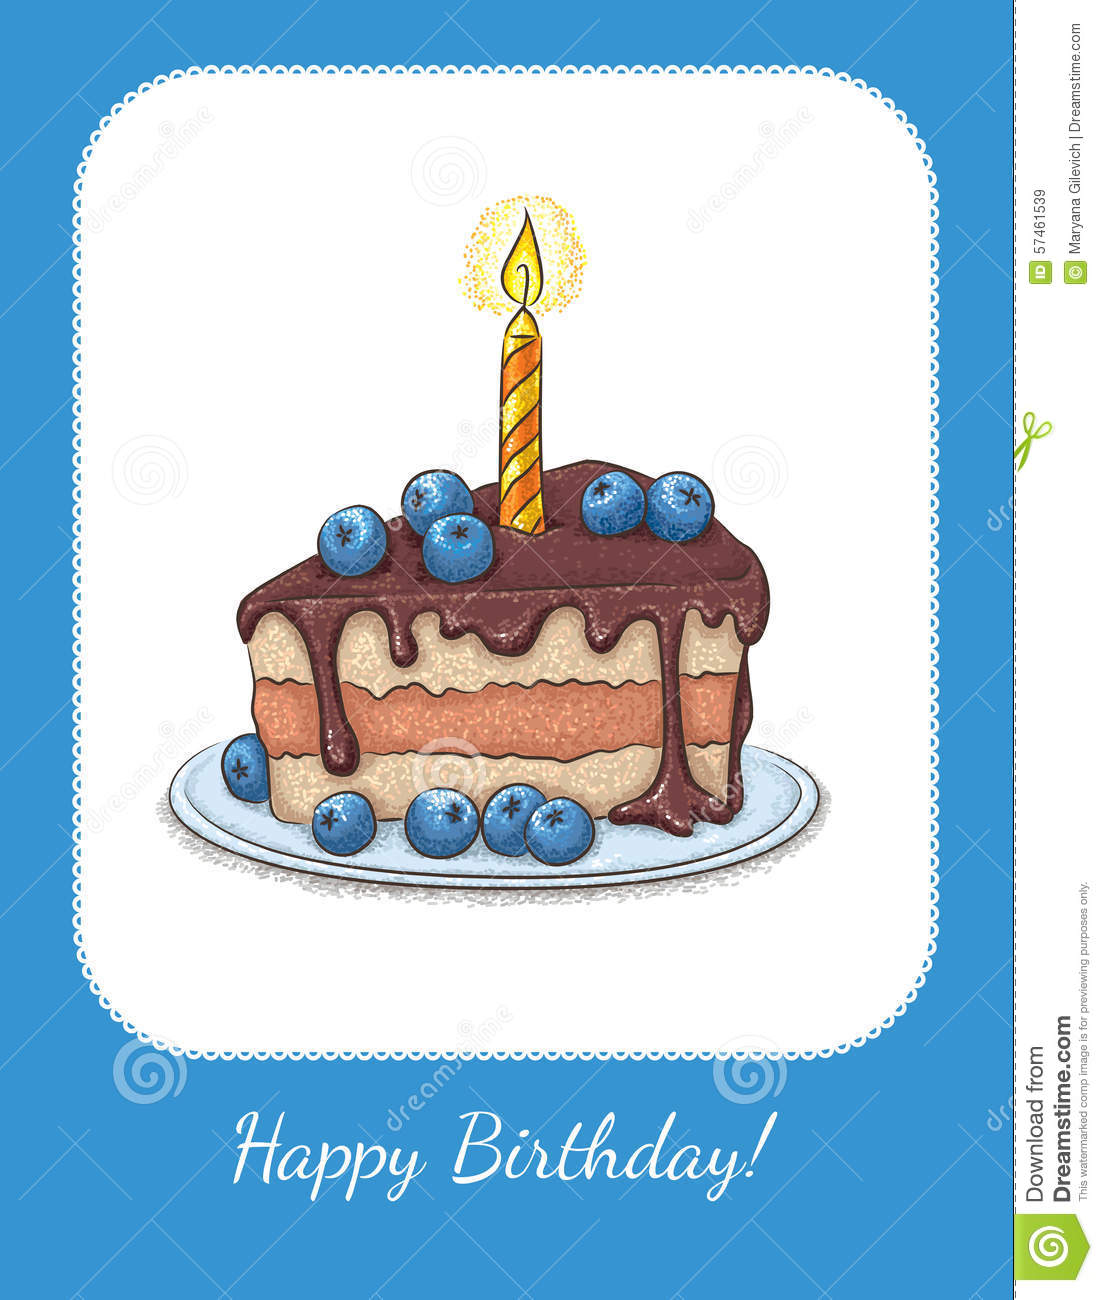 Download Card Birthday Stock Vector. Illustration Of Gift, Letters -  57461539